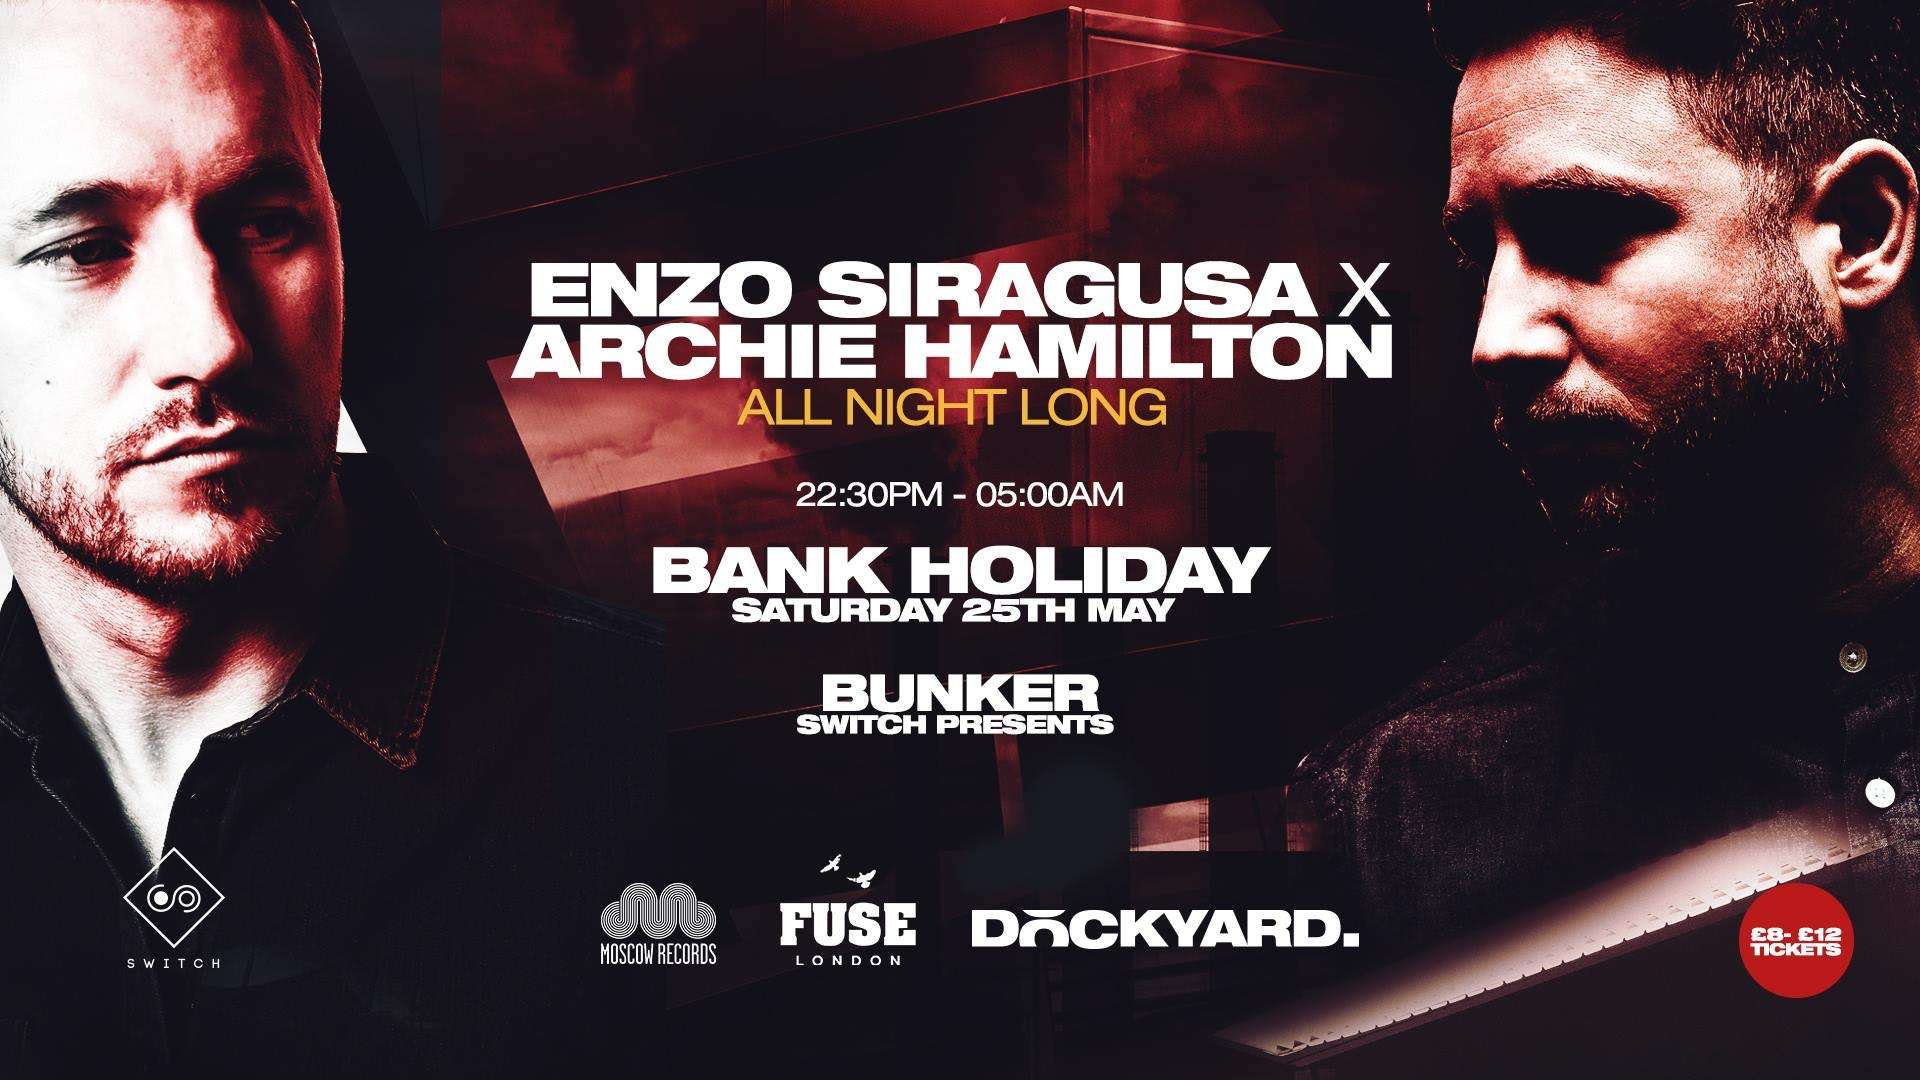 Enzo Siragusa x Archie Hamilton • Saturday 25th May